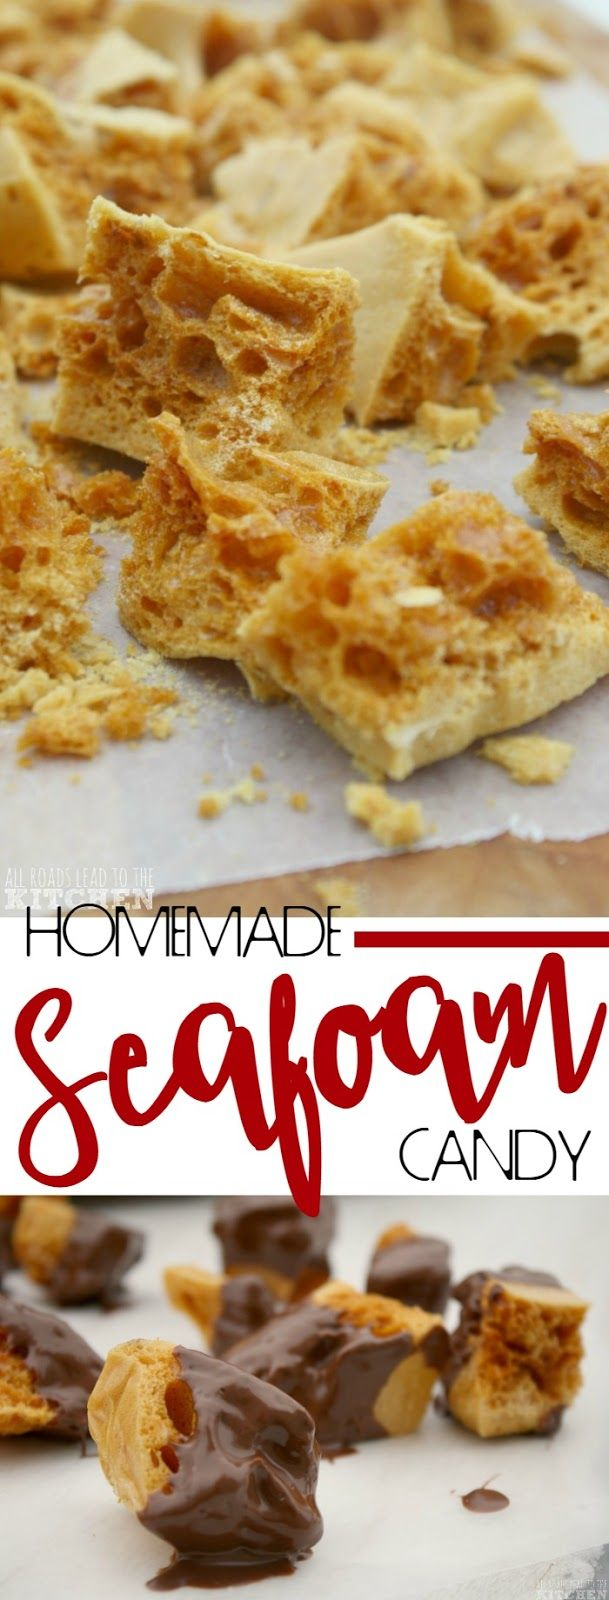 Homemade Seafoam Candy (aka Sponge Candy, Honeycomb, Hokey Pokey, Cinder Toffee) #honeycombcandy